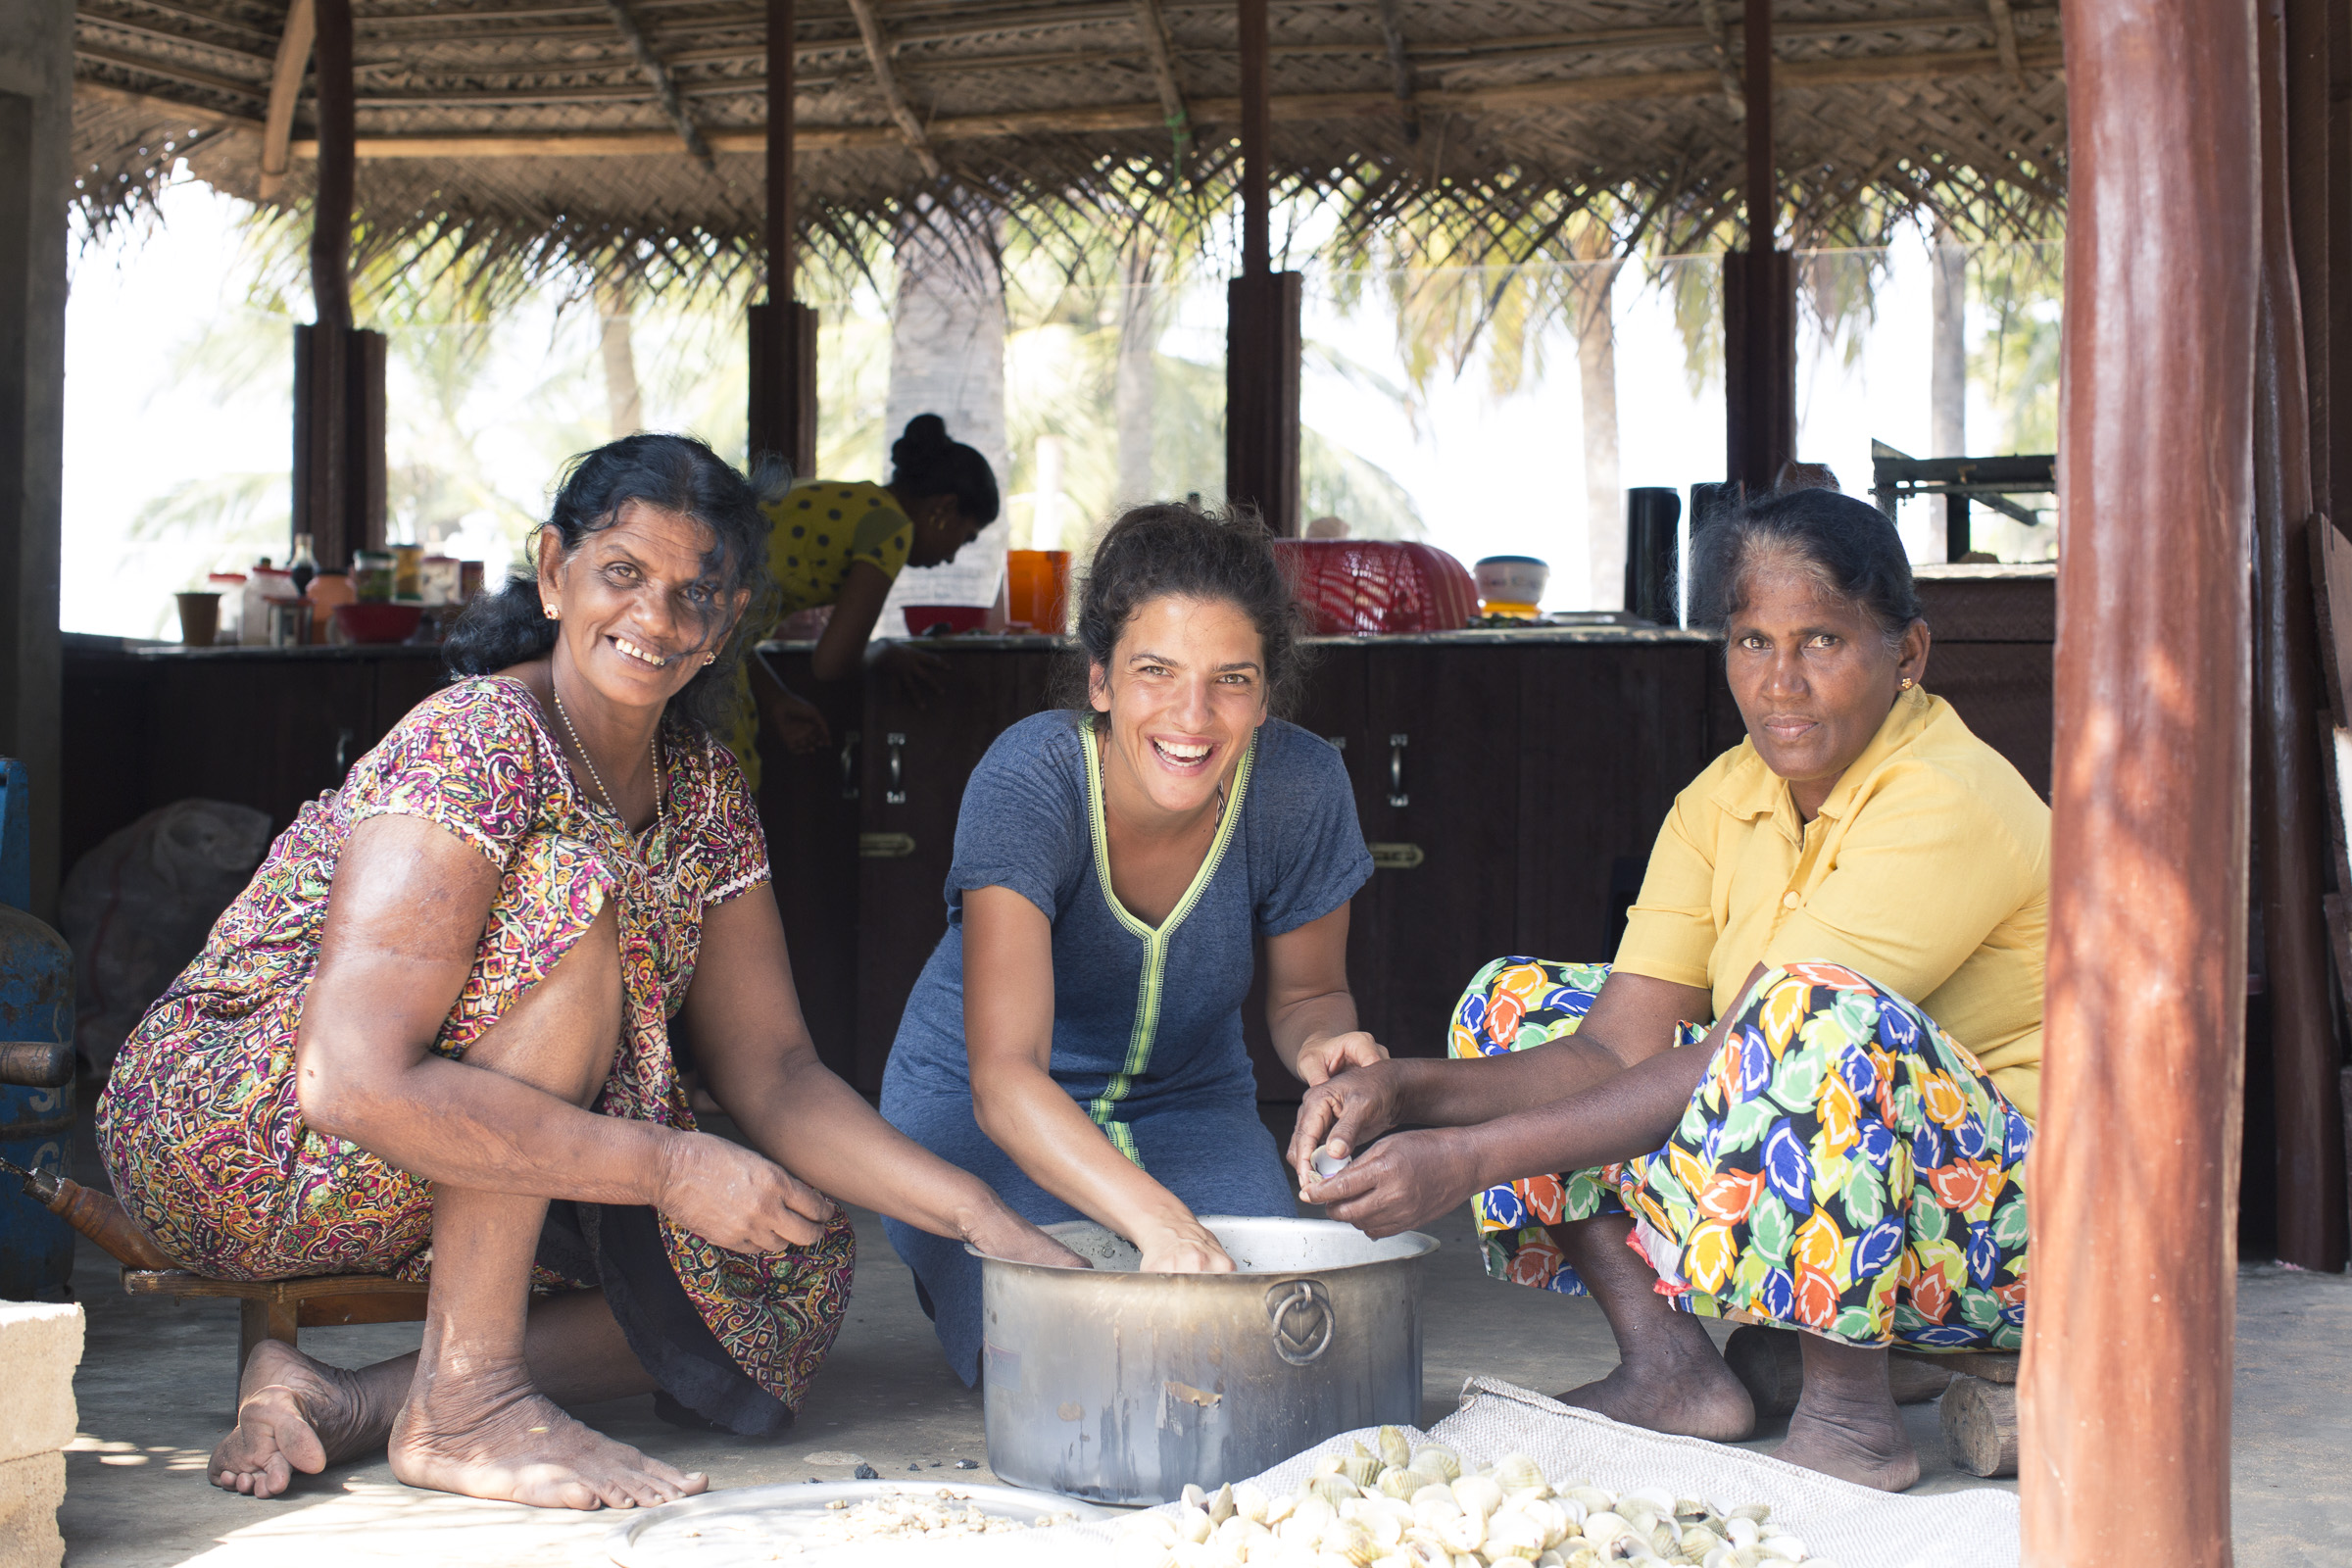 our team will show how we cook the mussels in Kalpitiya - Sri Lanka